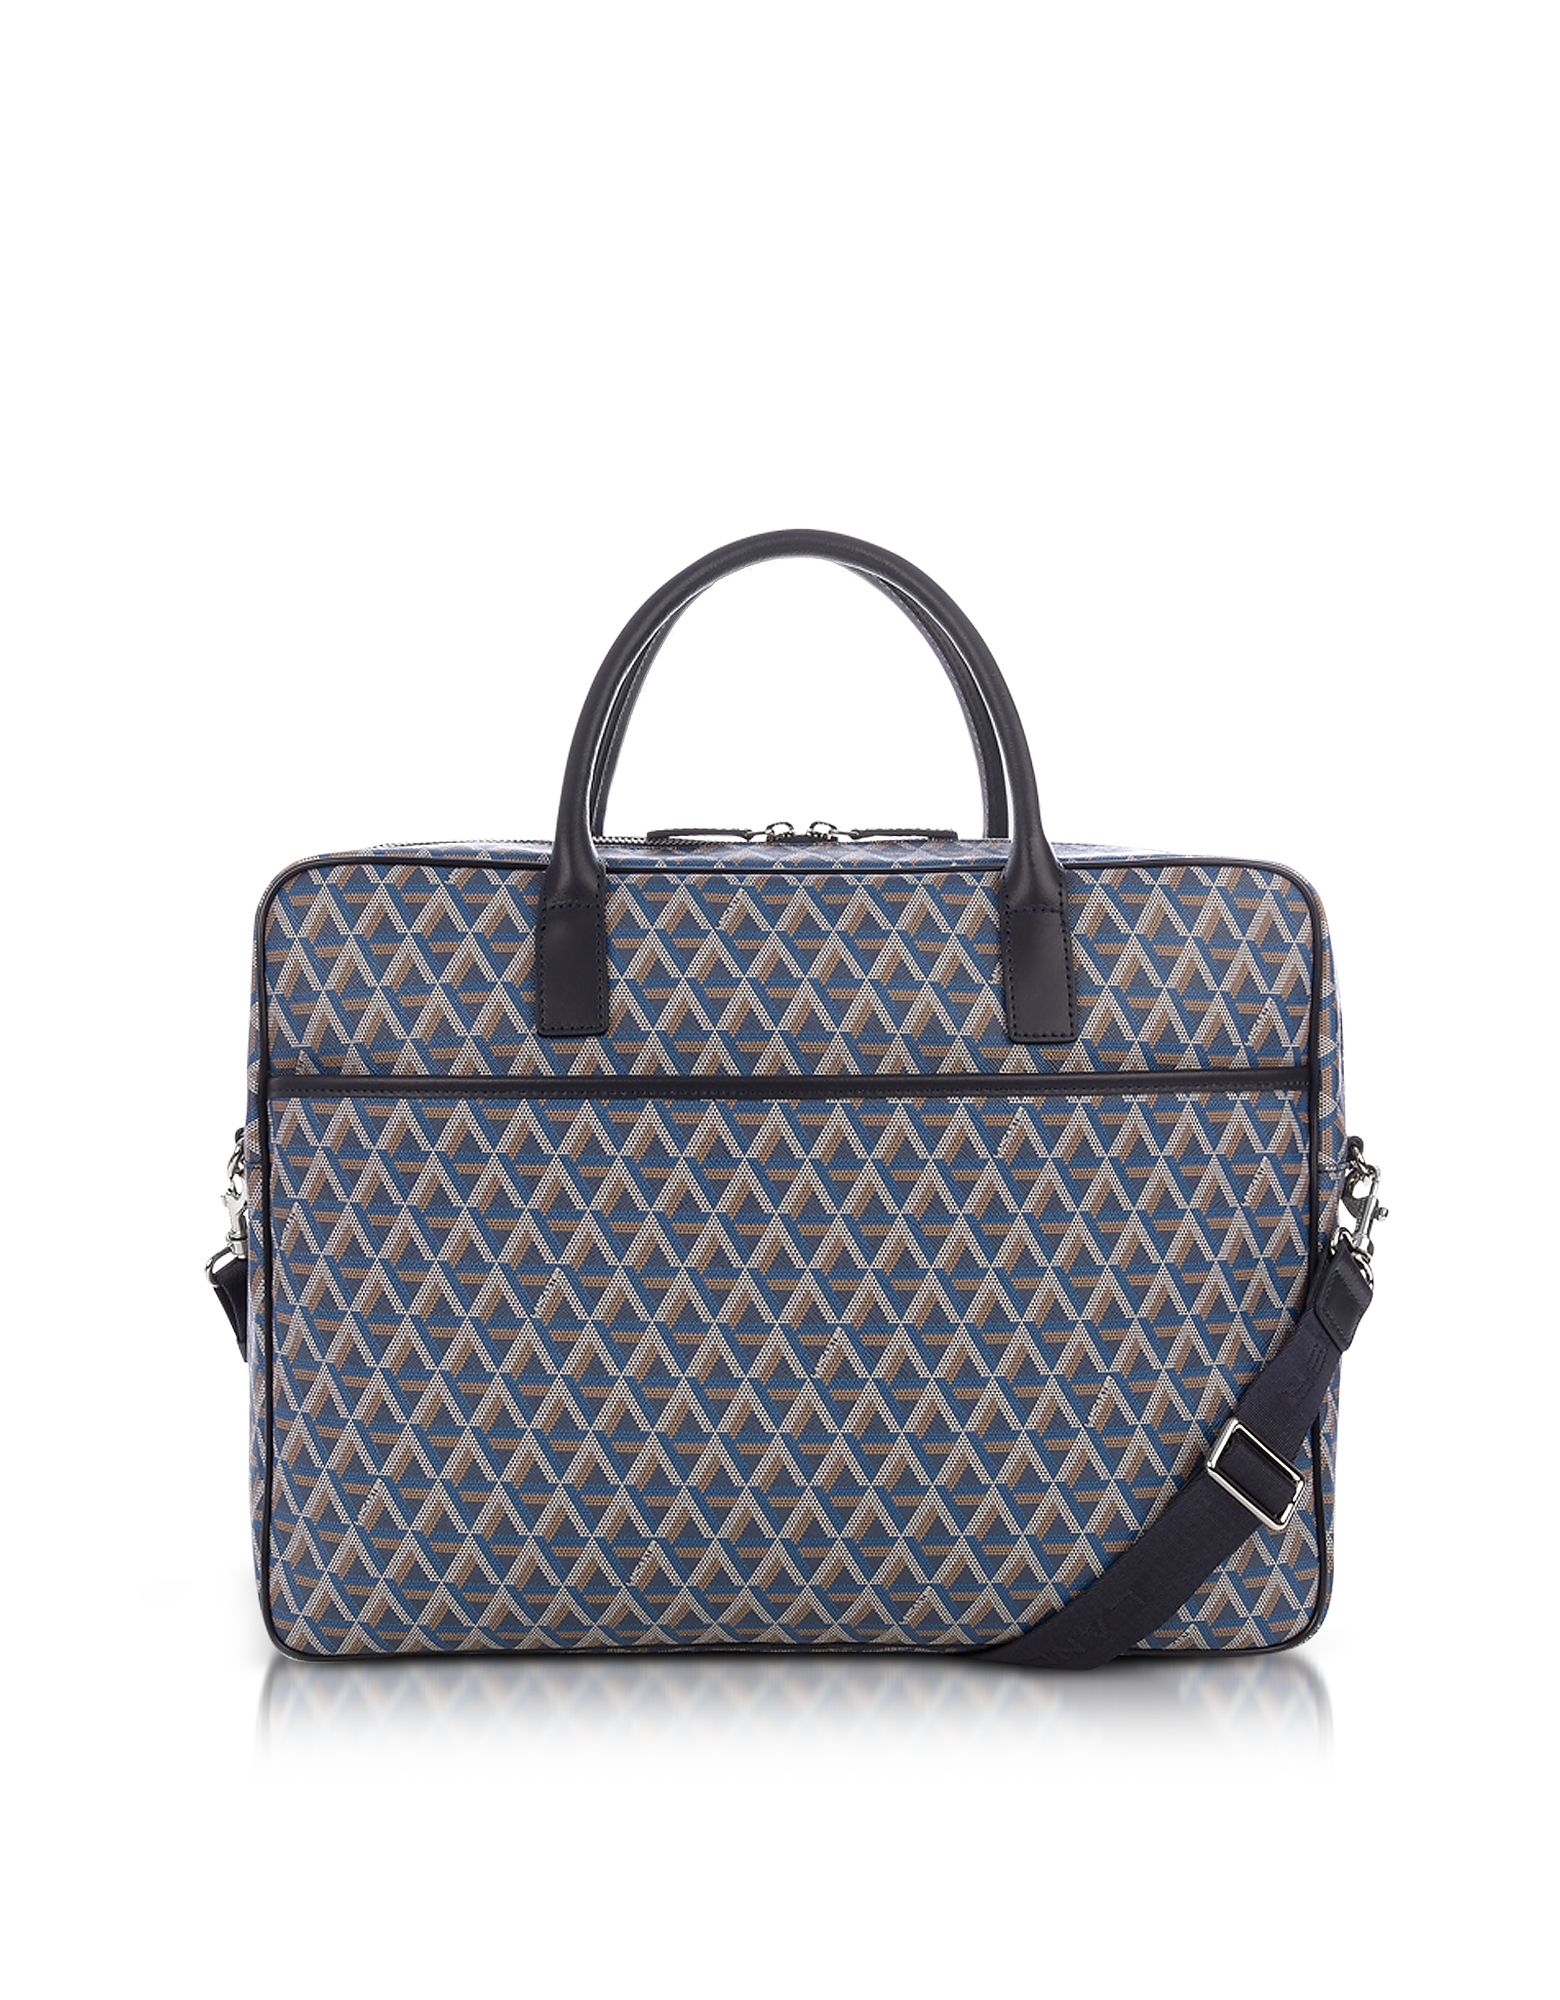 Lancaster Paris Briefcases, Ikon Blue Coated Canvas Men's Briefcase